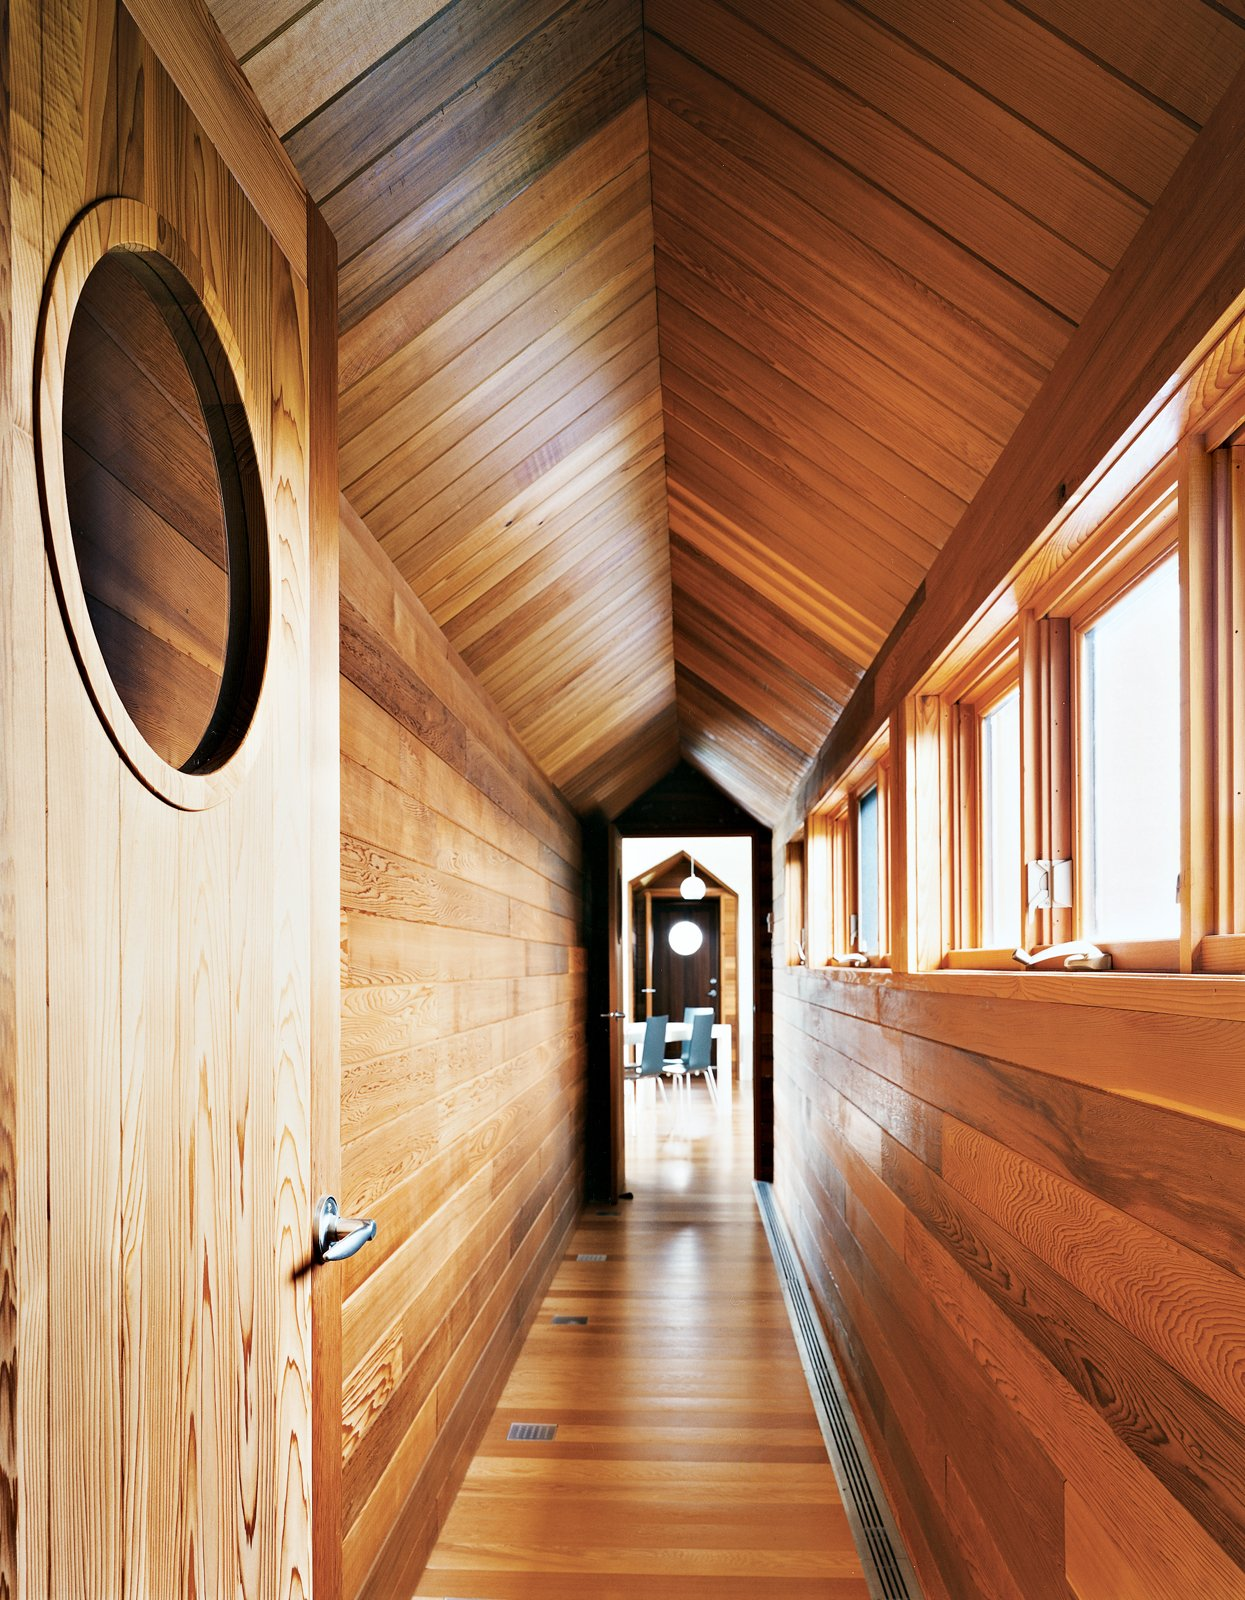 Hallway and Medium Hardwood Floor The view from the master bedroom down the long cedar corridor into the living room is one of the home's real pleasures.  Hail Cedar: 7 Houses that Make Use of Cedar Wood by Diana Budds from Blue in the Facade